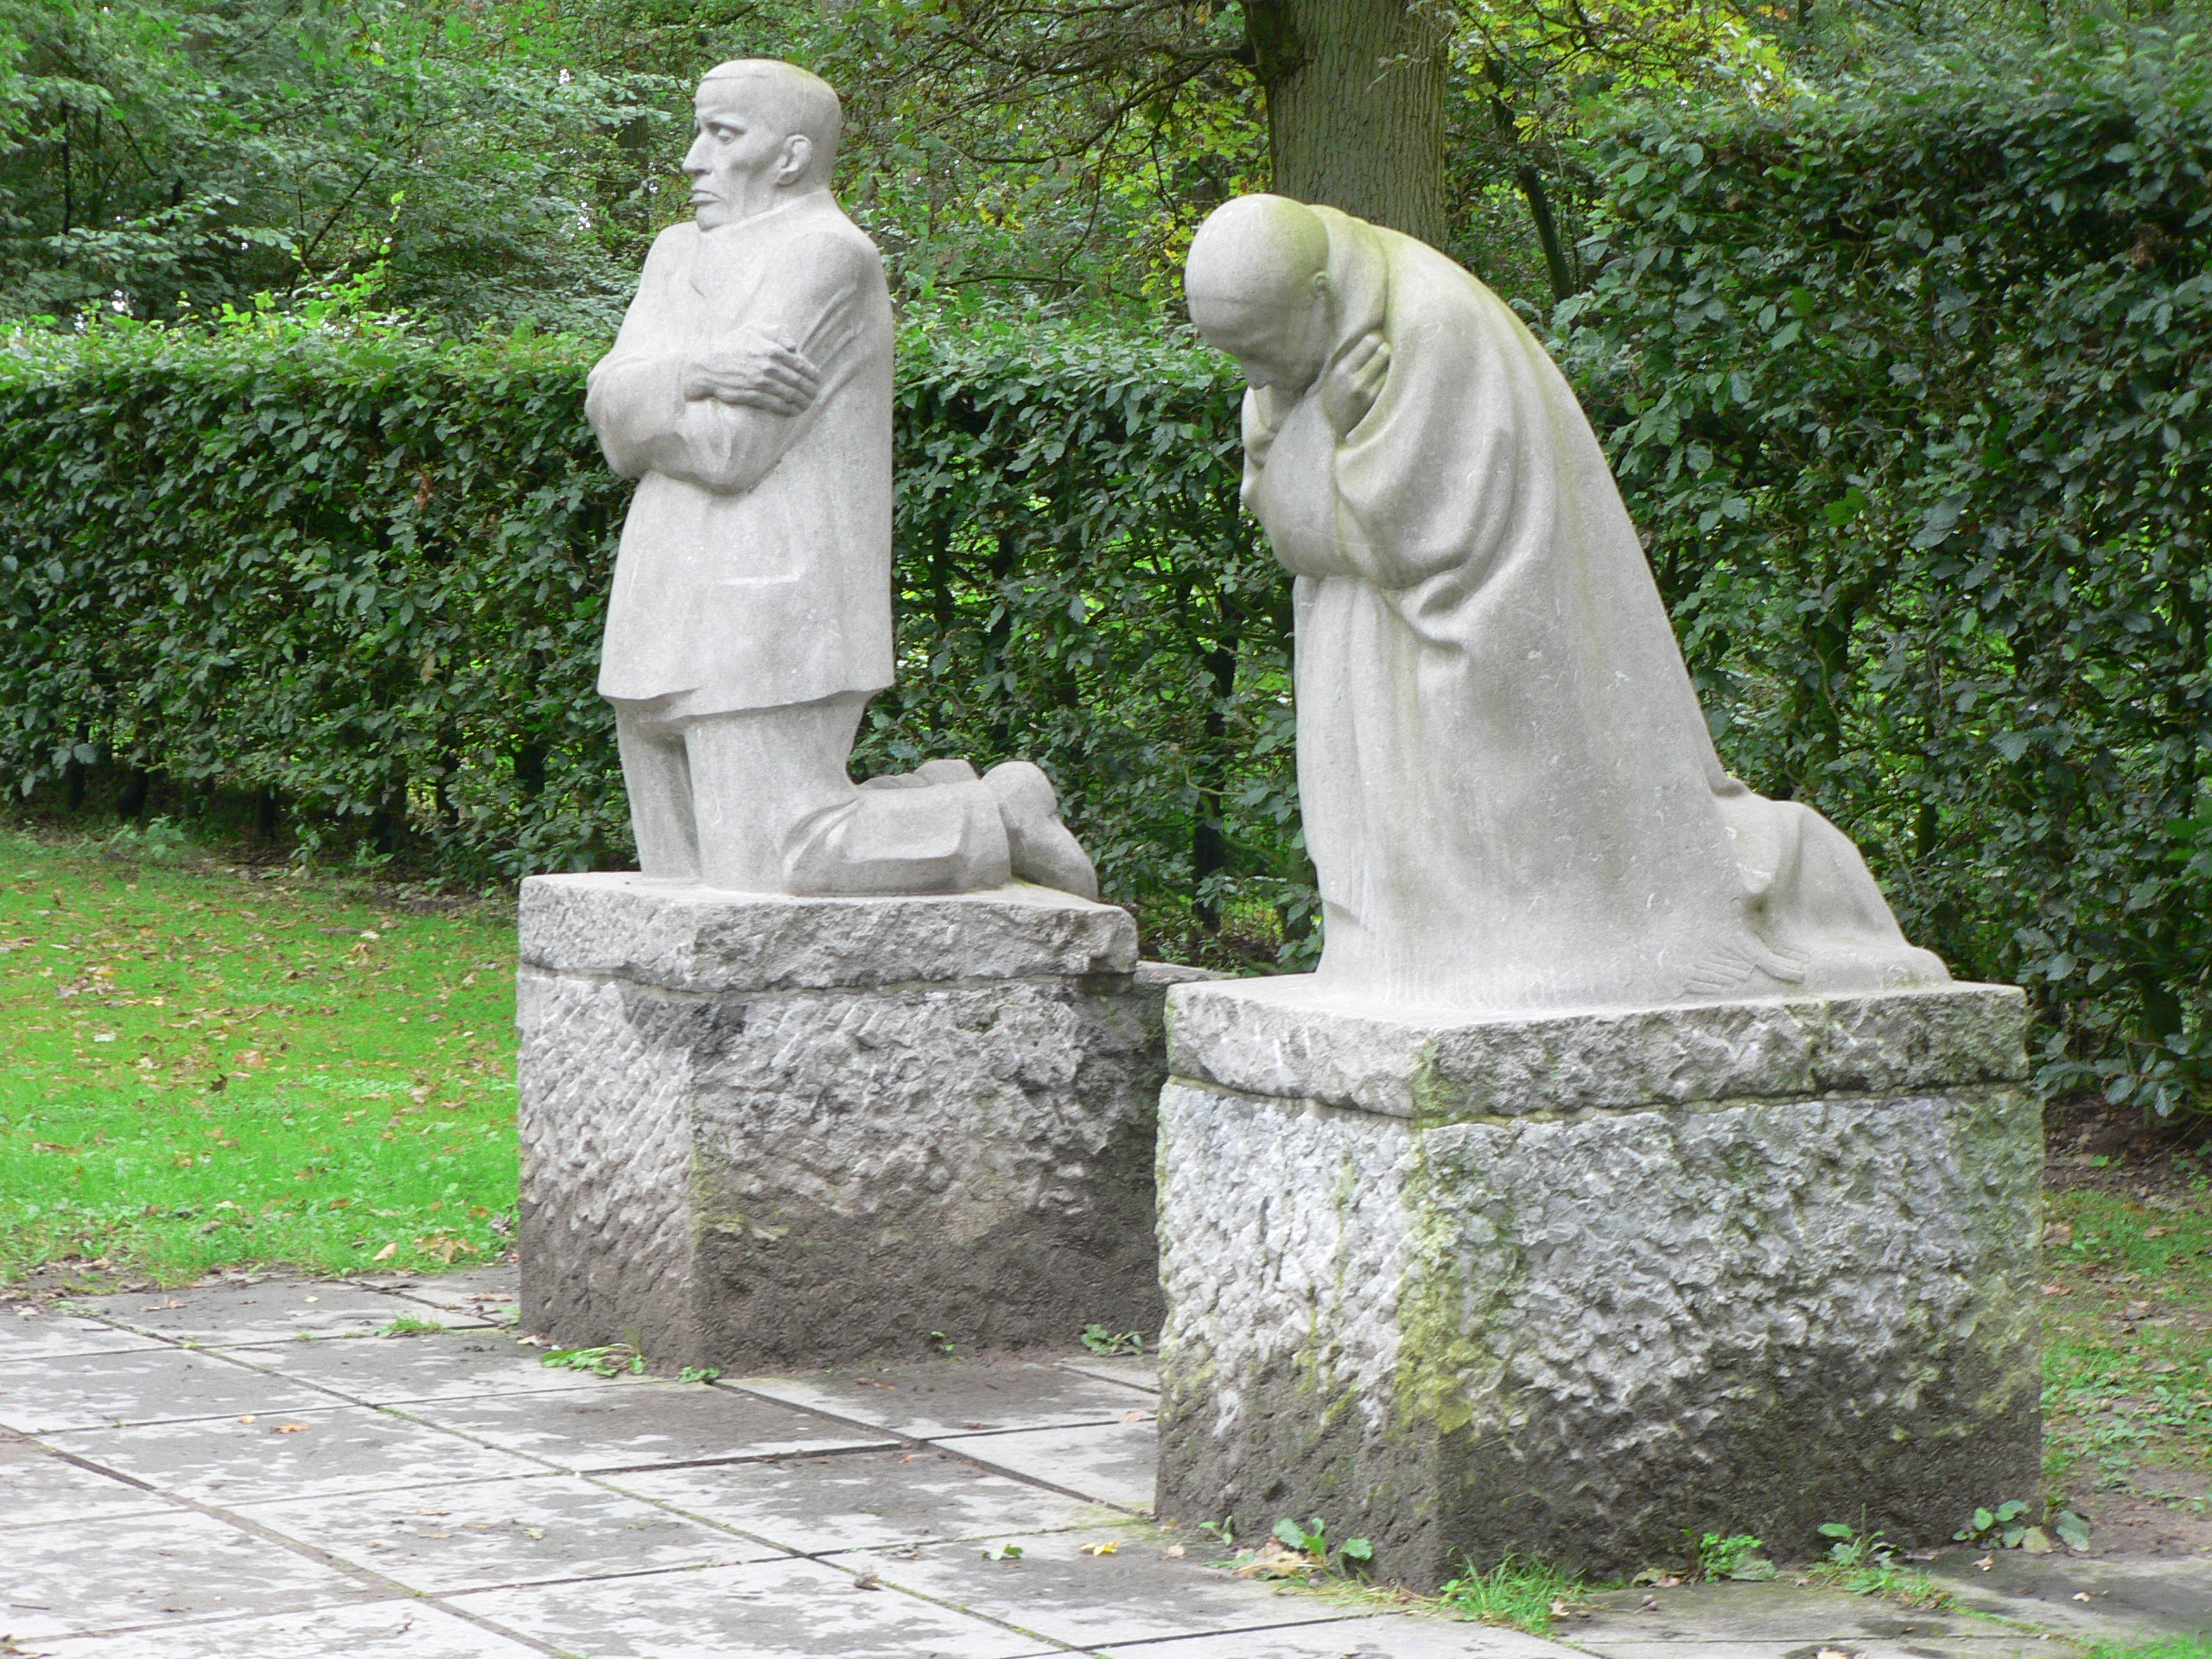 The Grieving Parents - Käthe Kollwitz - 1932 - for her son Peter, killed in World War I - Vladslo German War Cemetery, Belgium (pubic domain)